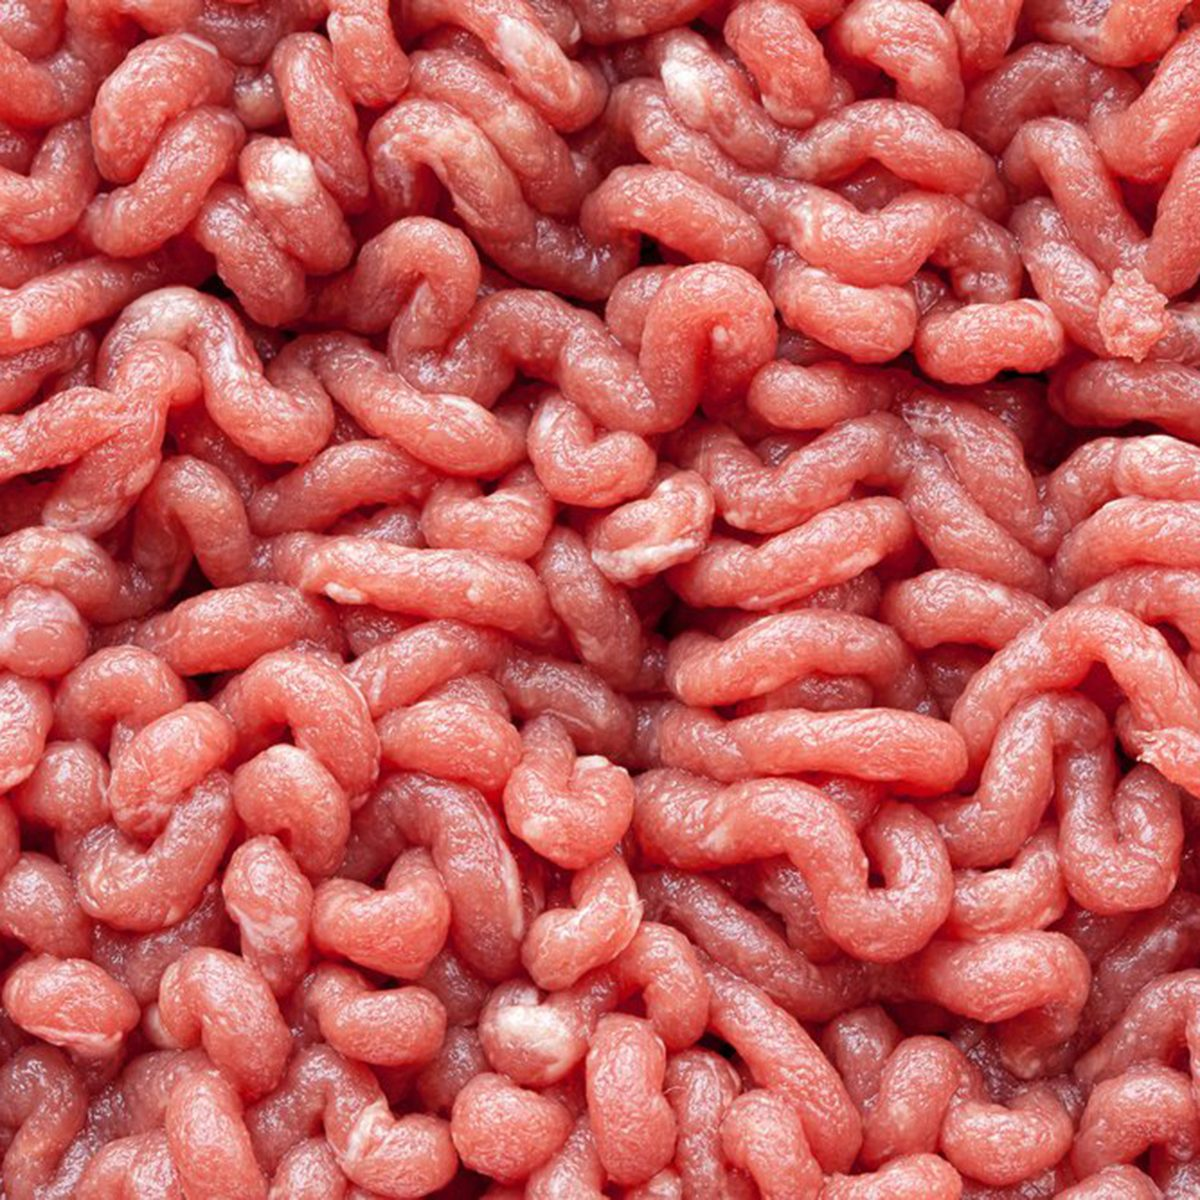 Beef Recalled in 10 States Due to Risk of E. Coli Contamination